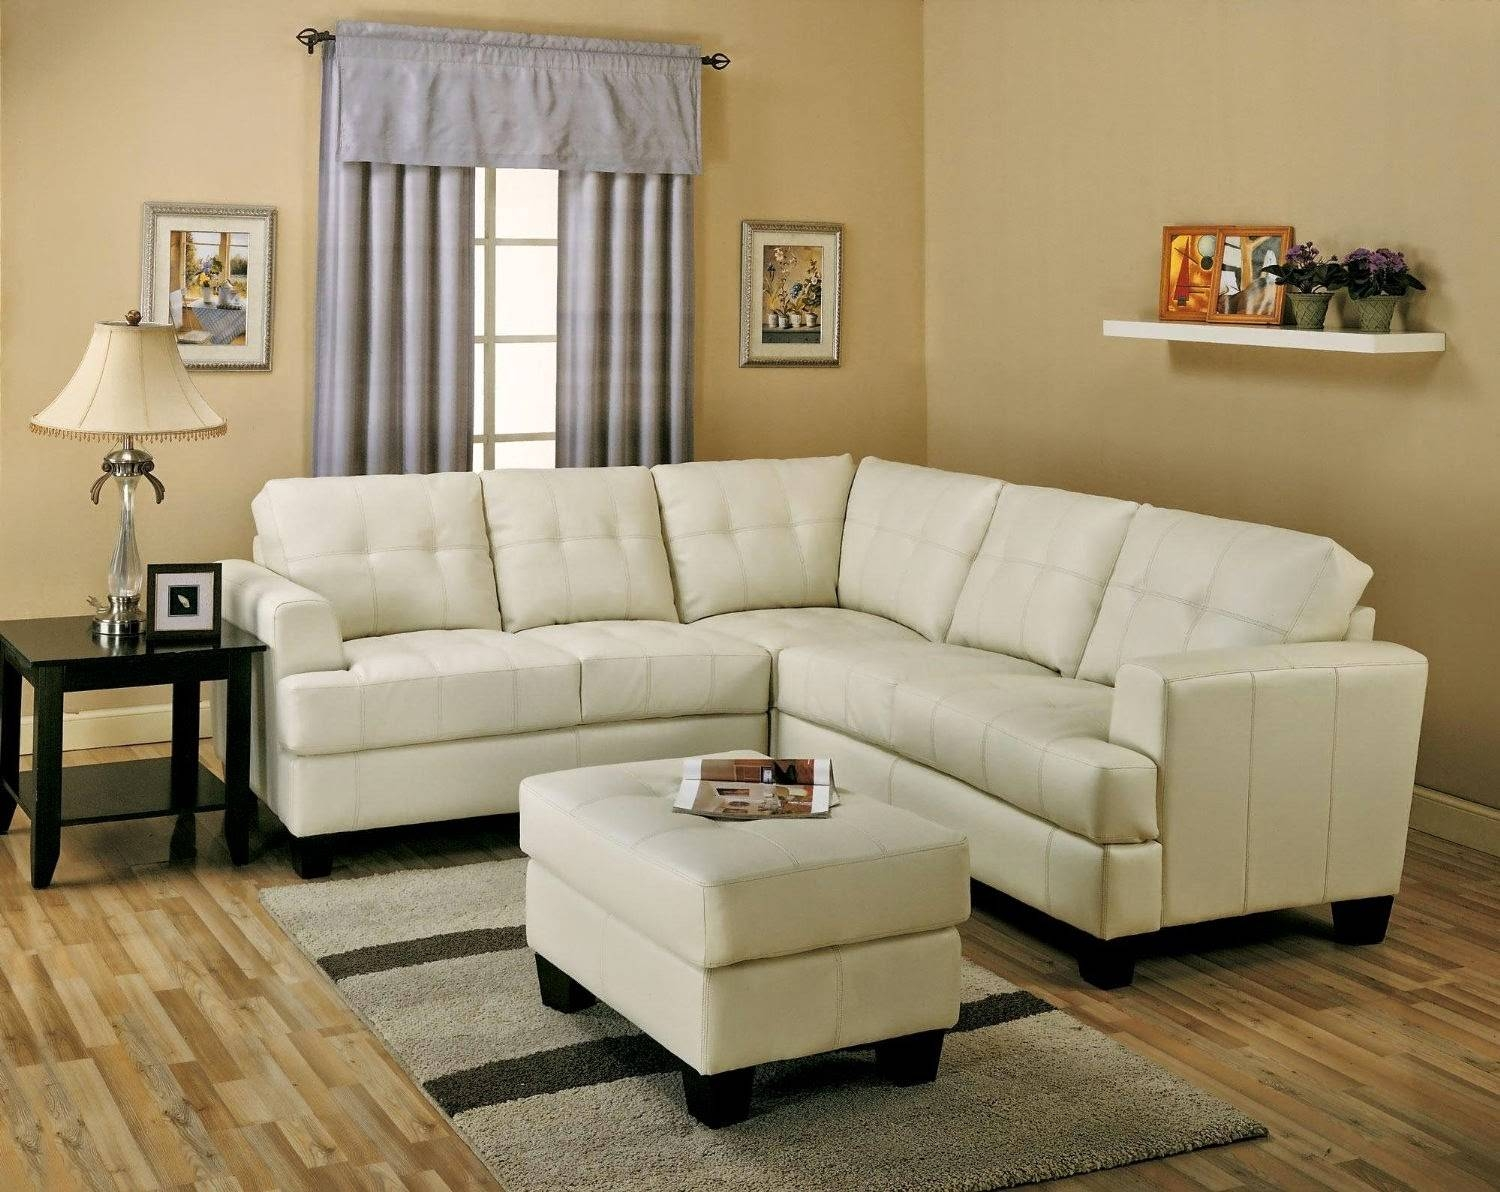 Furniture: West Elm Sectional | Tillary Sofa | Tillary Sectional with regard to West Elm Sectional Sofa (Image 16 of 30)